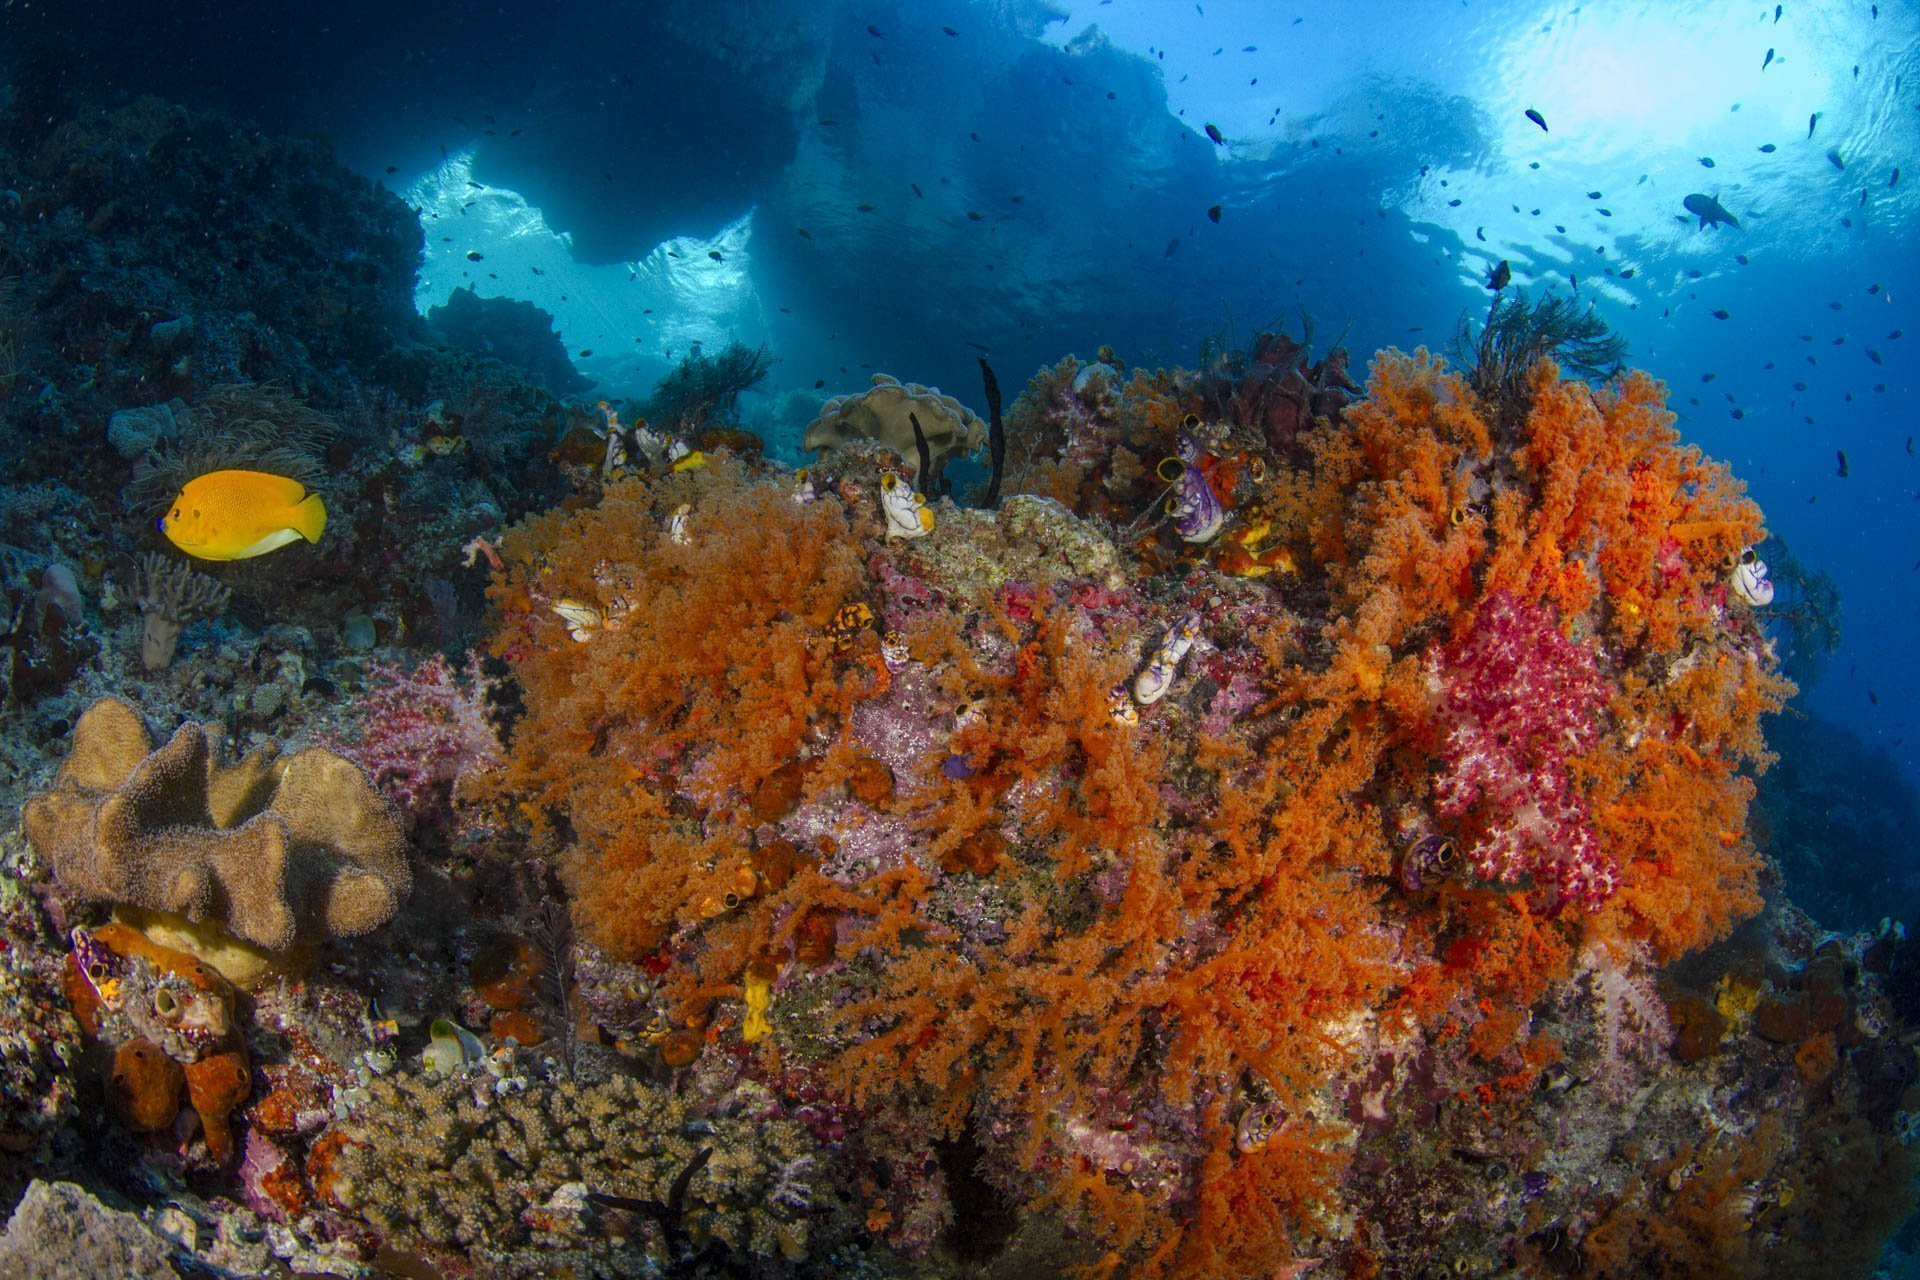 orange soft coral and underwater topography